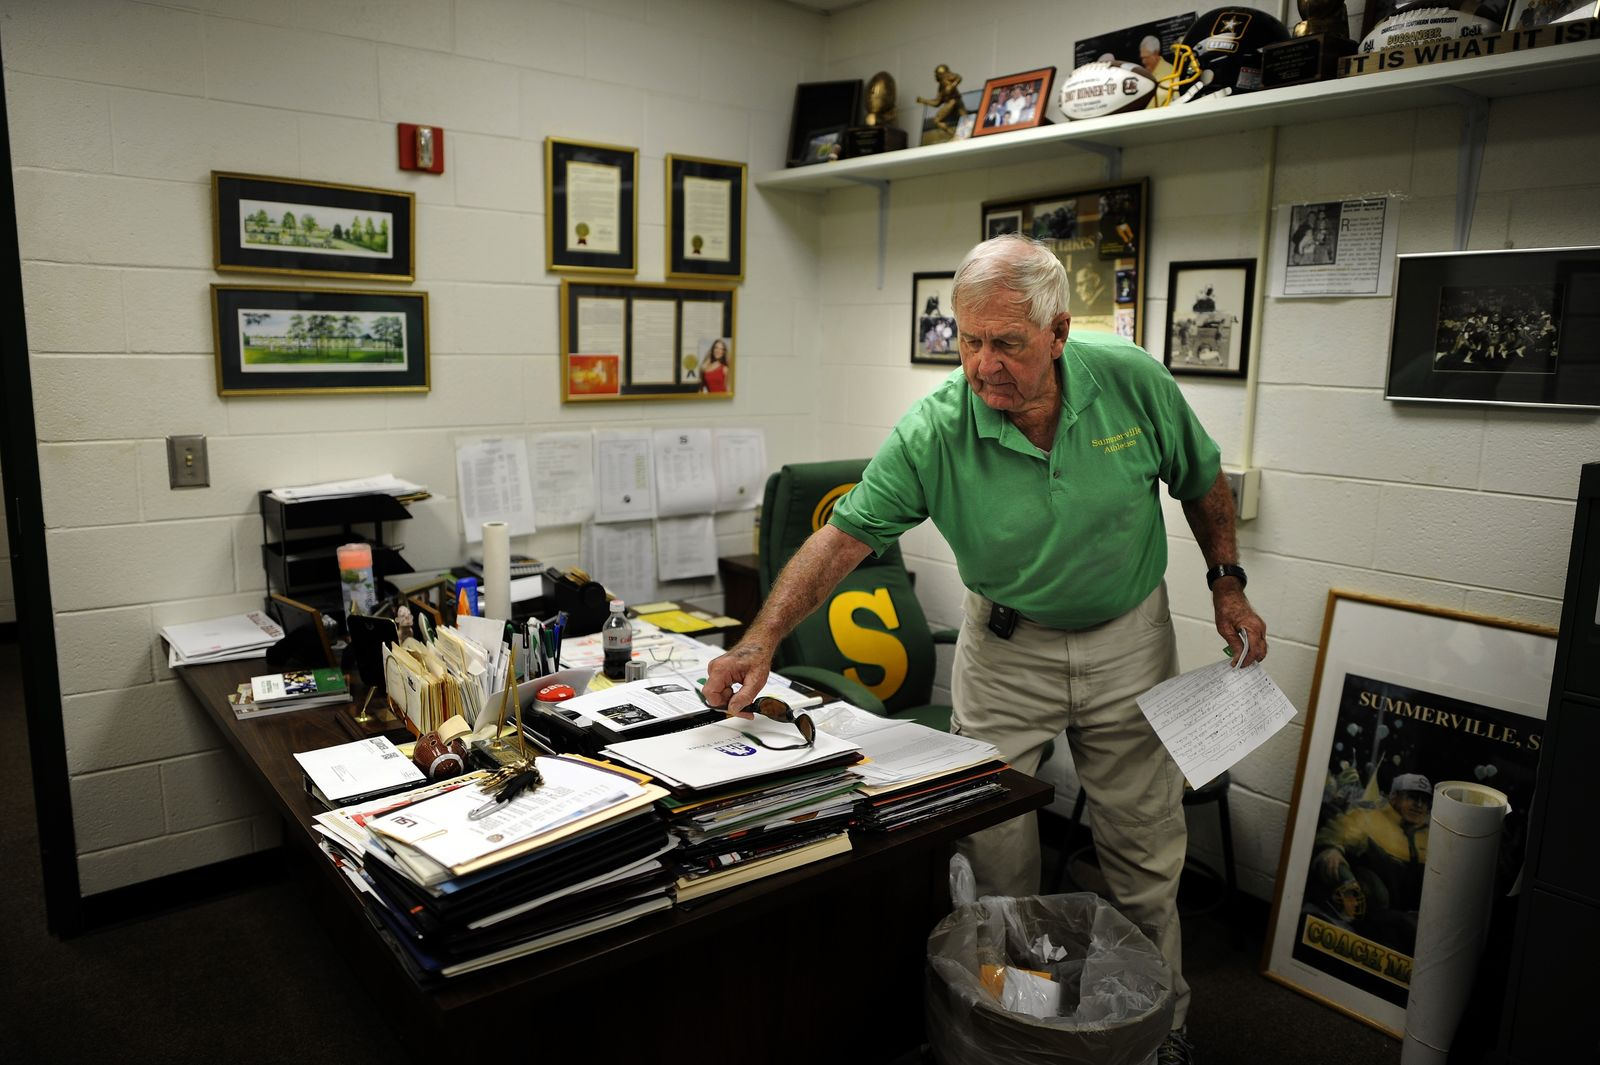 FILE - In this Oct. 24, 2012, file photo, Summerville High School coach John McKissick prepares to leave his office for the school's practice field in Summerville, S.C. McKissick, whose 621 victories at South Carolina's Summerville High made him the nation's winningest football coach at any level, has died at age 93. Dorchester County Coroner Paul Brouthers said McKissick had been in hospice care and died Thursday, Nov. 28, 2019, surrounded by family. (AP Photo/Stephen Morton, File)